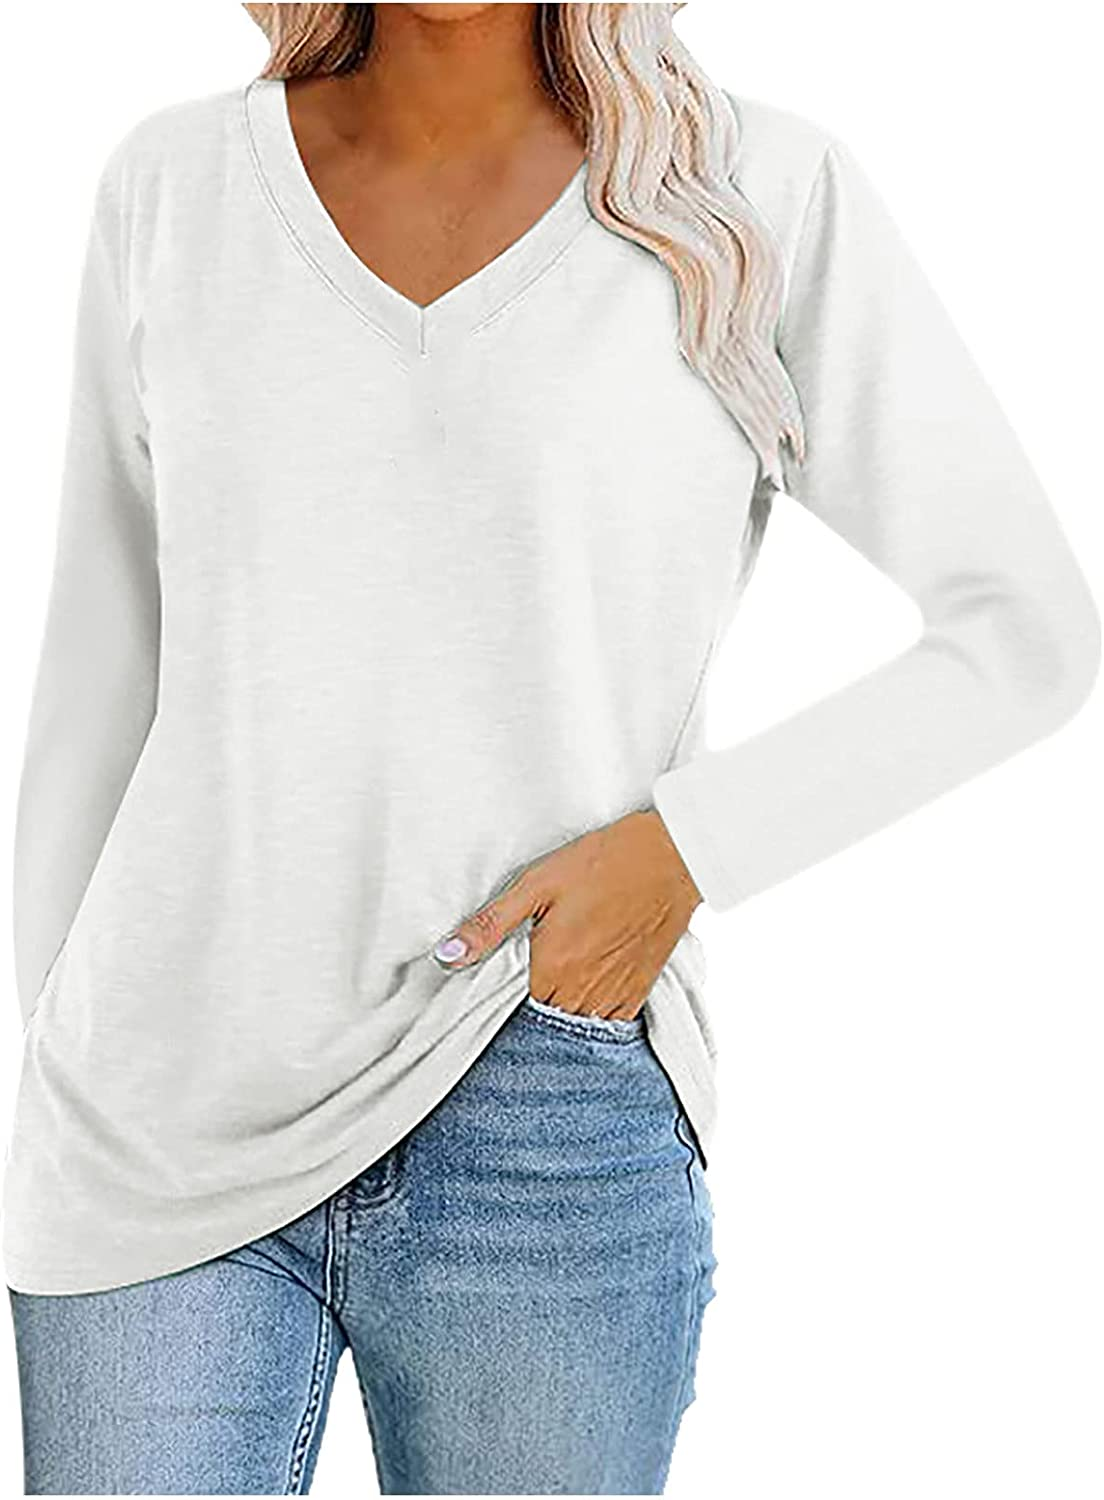 Women V-Neck Long Sleeve Shirts Autumn Solid Color Blouse Tops Casual Loose Pullover Tunic Tops Tops